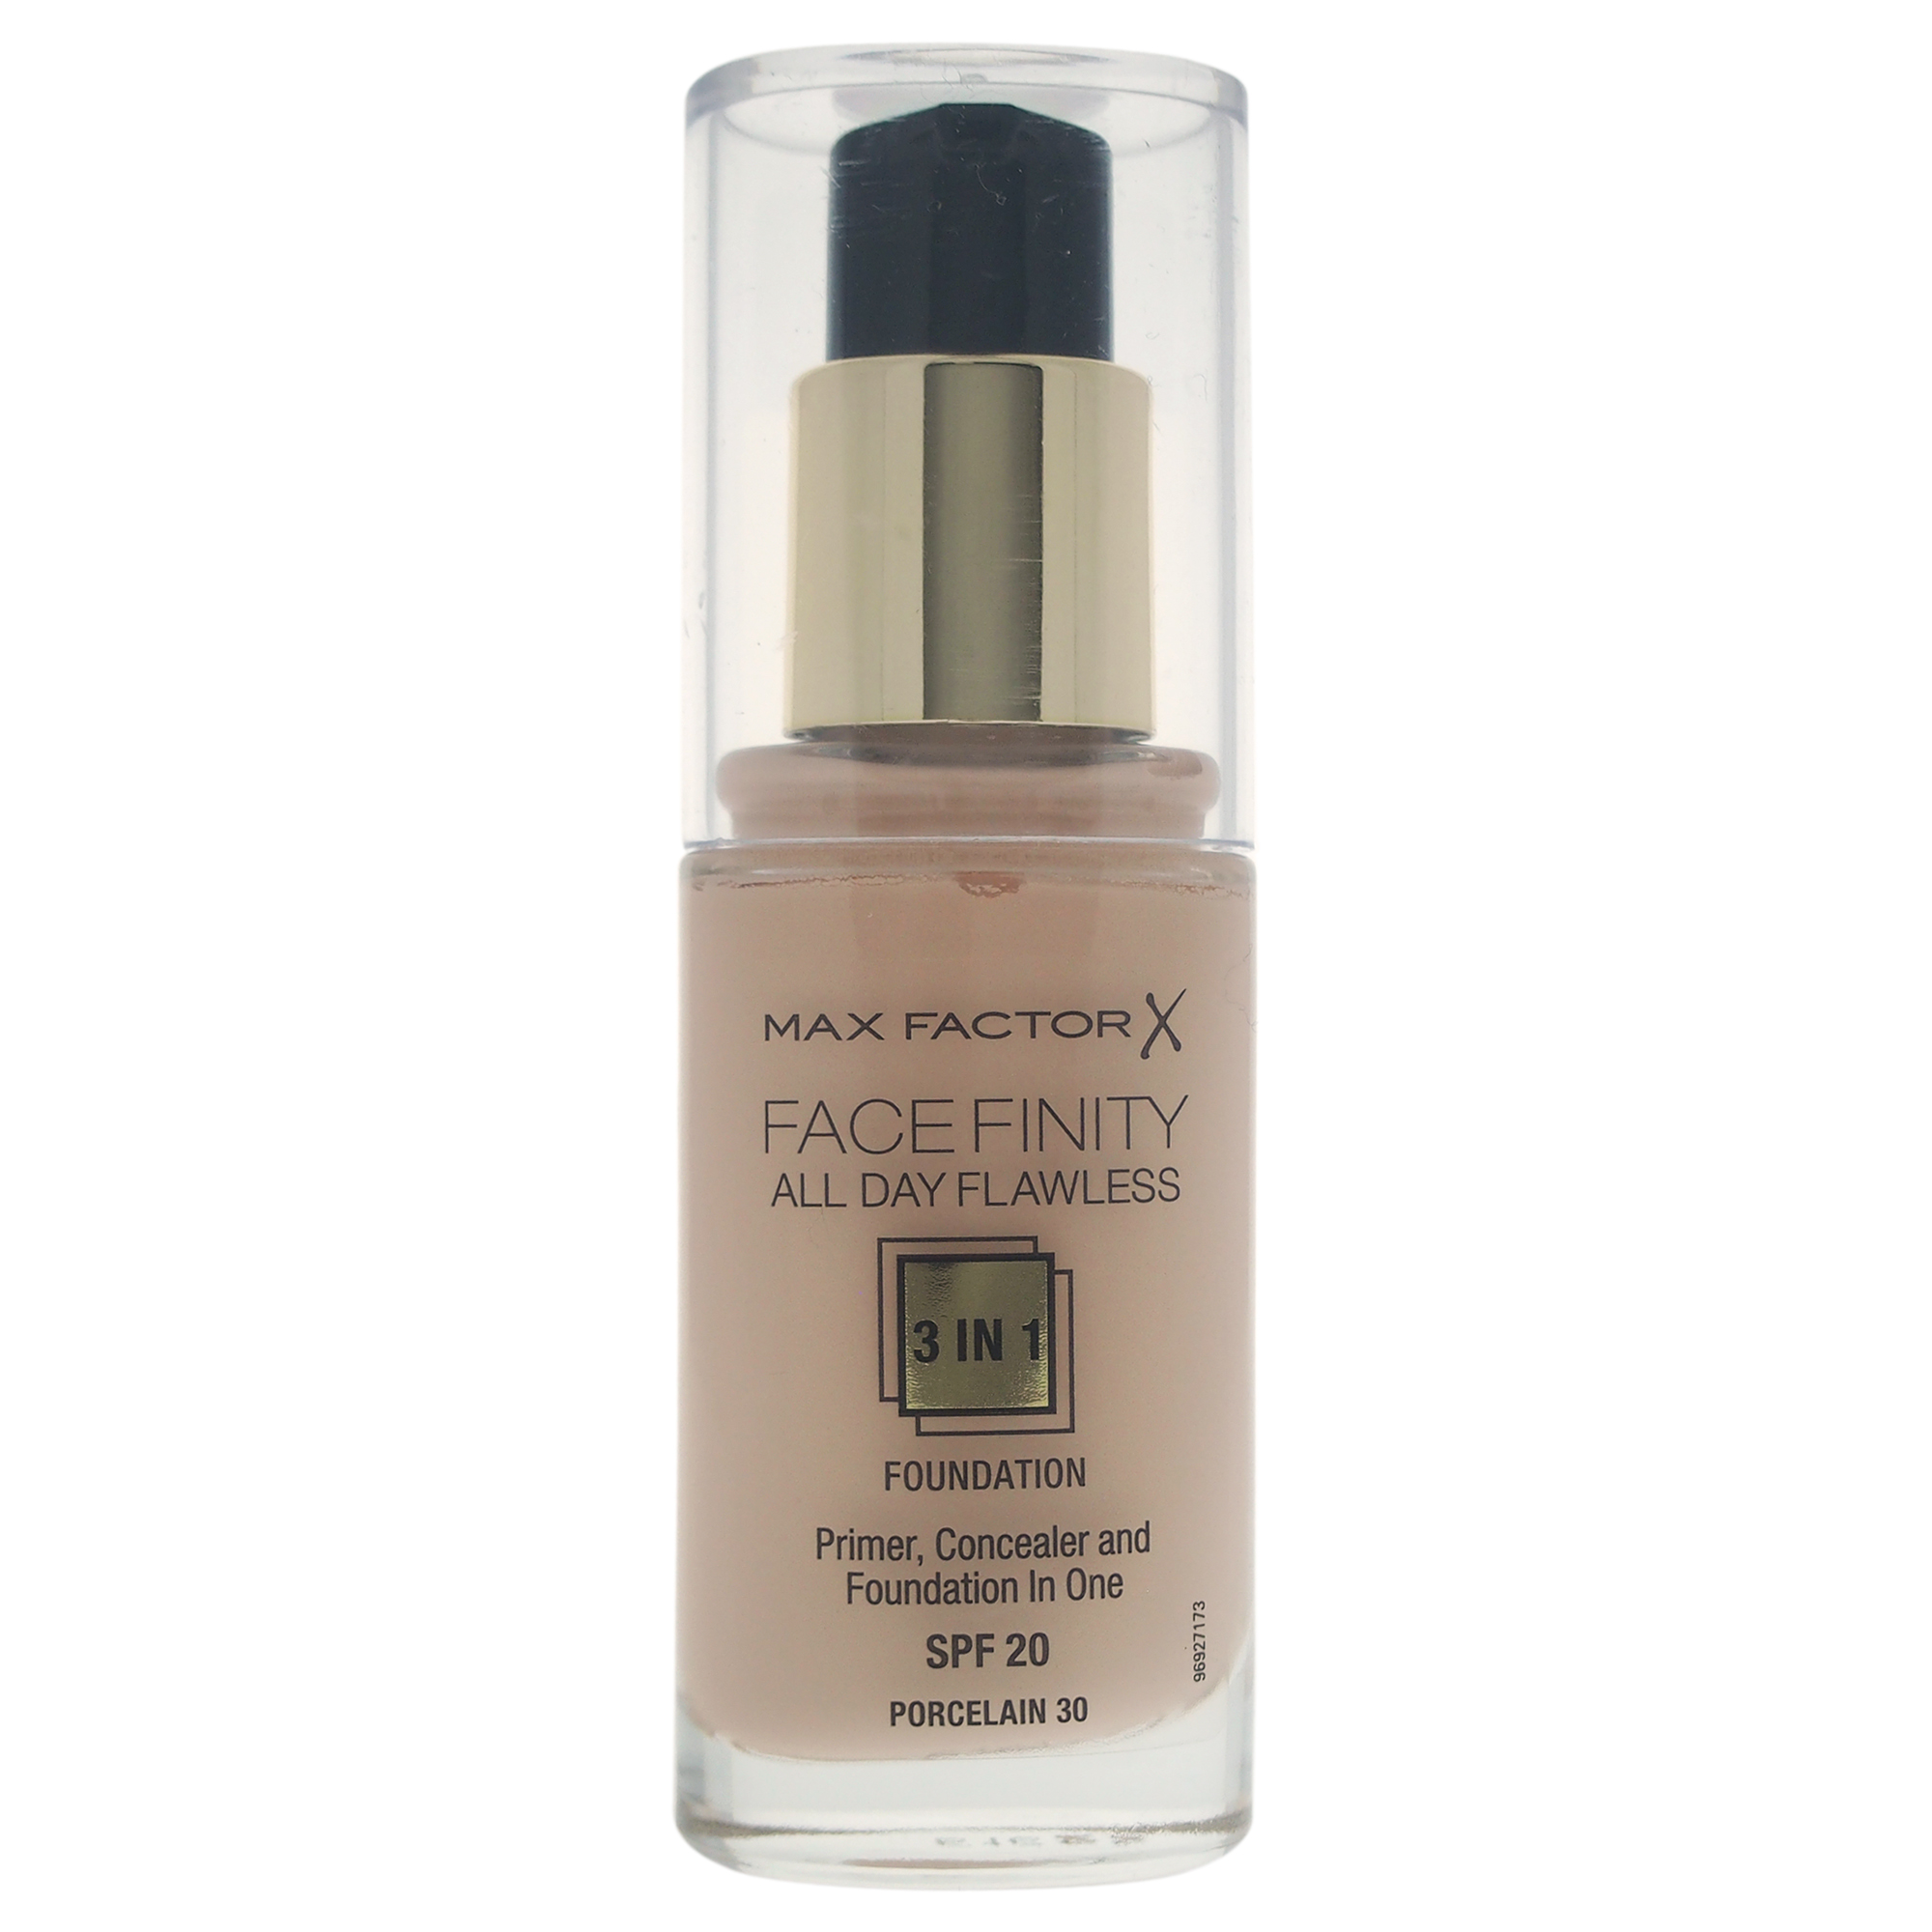 Facefinity All Day Flawless 3 In 1 Foundation SPF 20 - # 30 Porcelain by Max Factor for Women - 30 ml Foundation